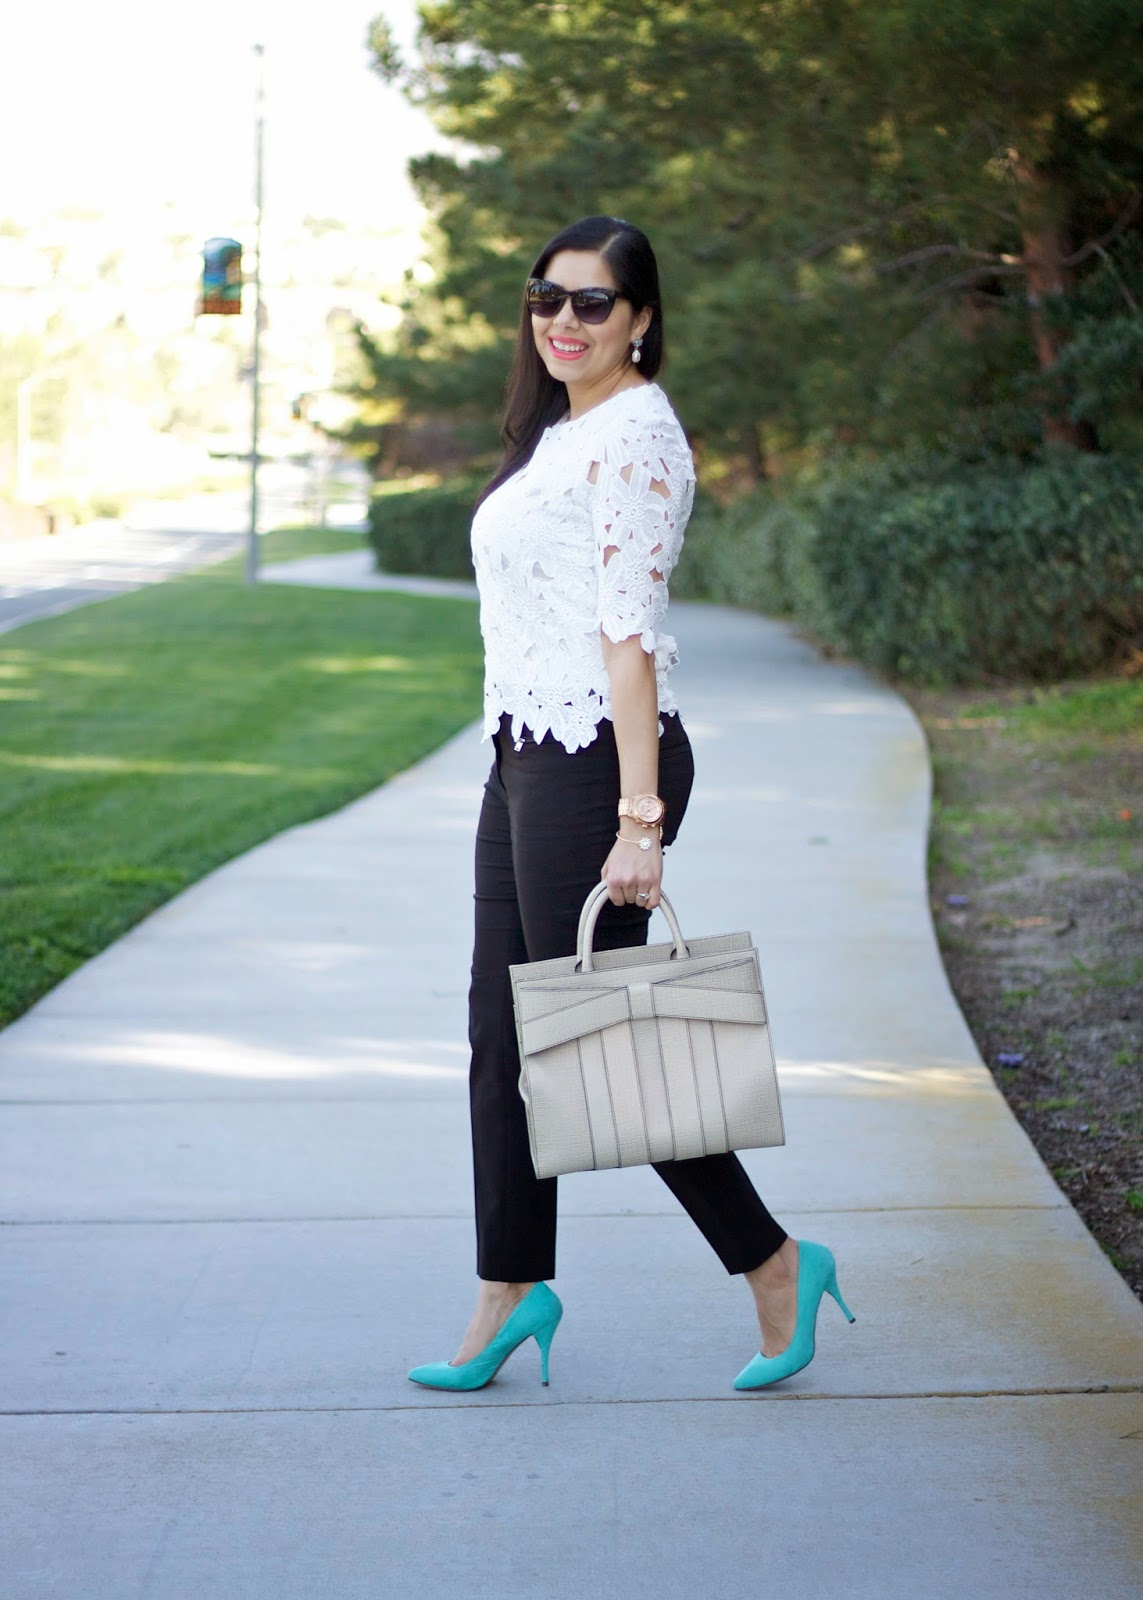 Lace crochet top sheinside, how to wear a white floral lace top, san diego style blogger, san diego fashion blogger, san diego fashion, san diego street style